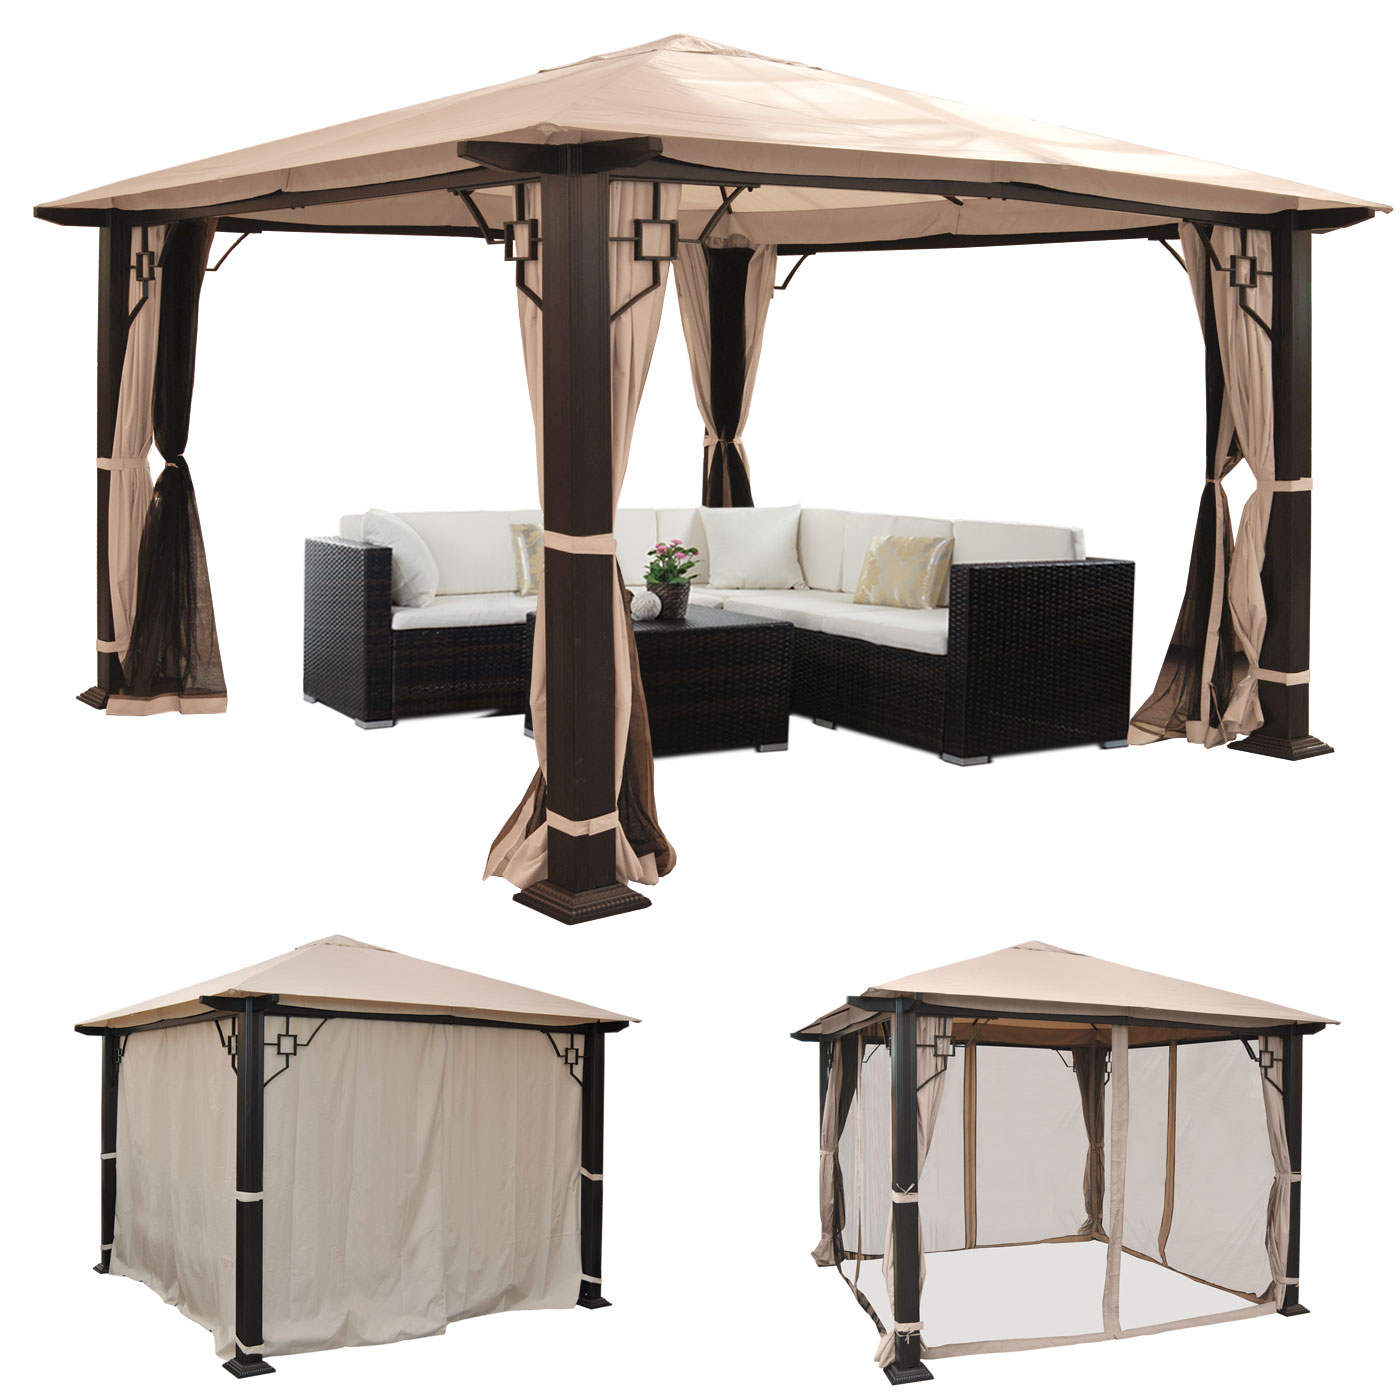 pergola mira garten pavillon 12cm luxus alu gestell mit. Black Bedroom Furniture Sets. Home Design Ideas